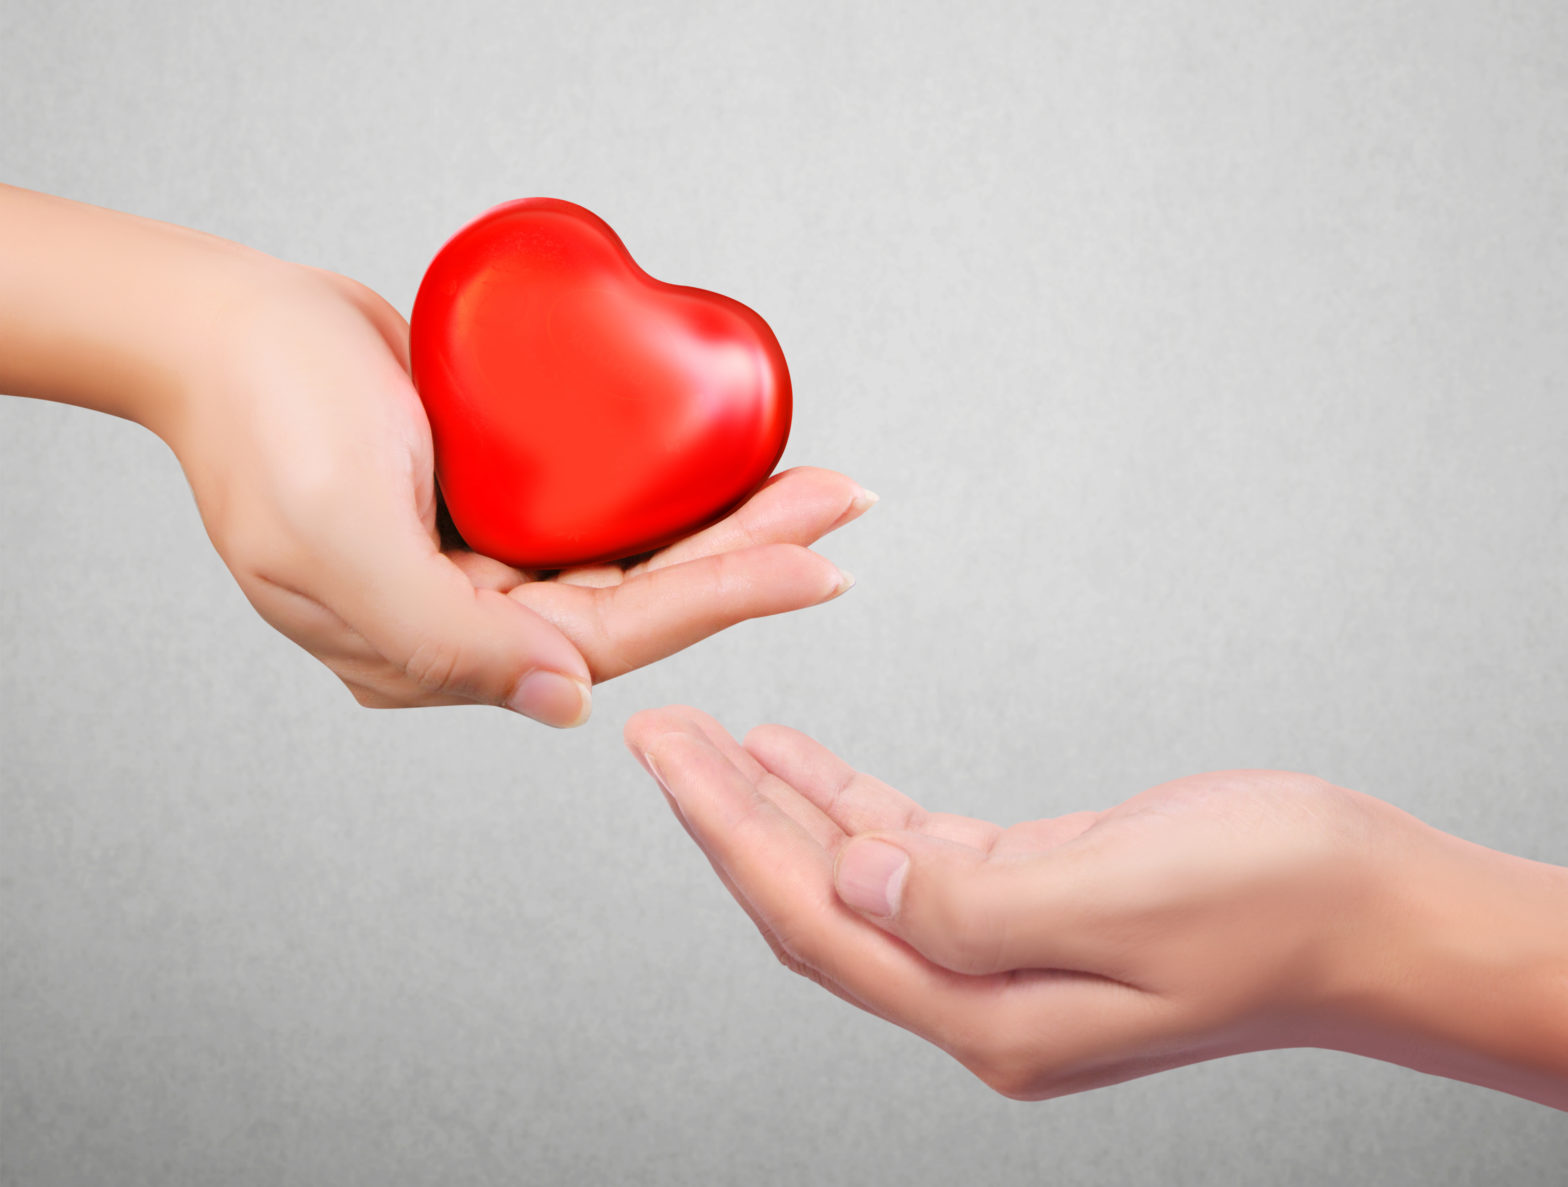 A hand holding a heart, giving it to someone else as a gift, 10 Tips for a Loving Relationship for Couples & the Lonely Hearts, Joanne Tan, 10PlusBrand.com